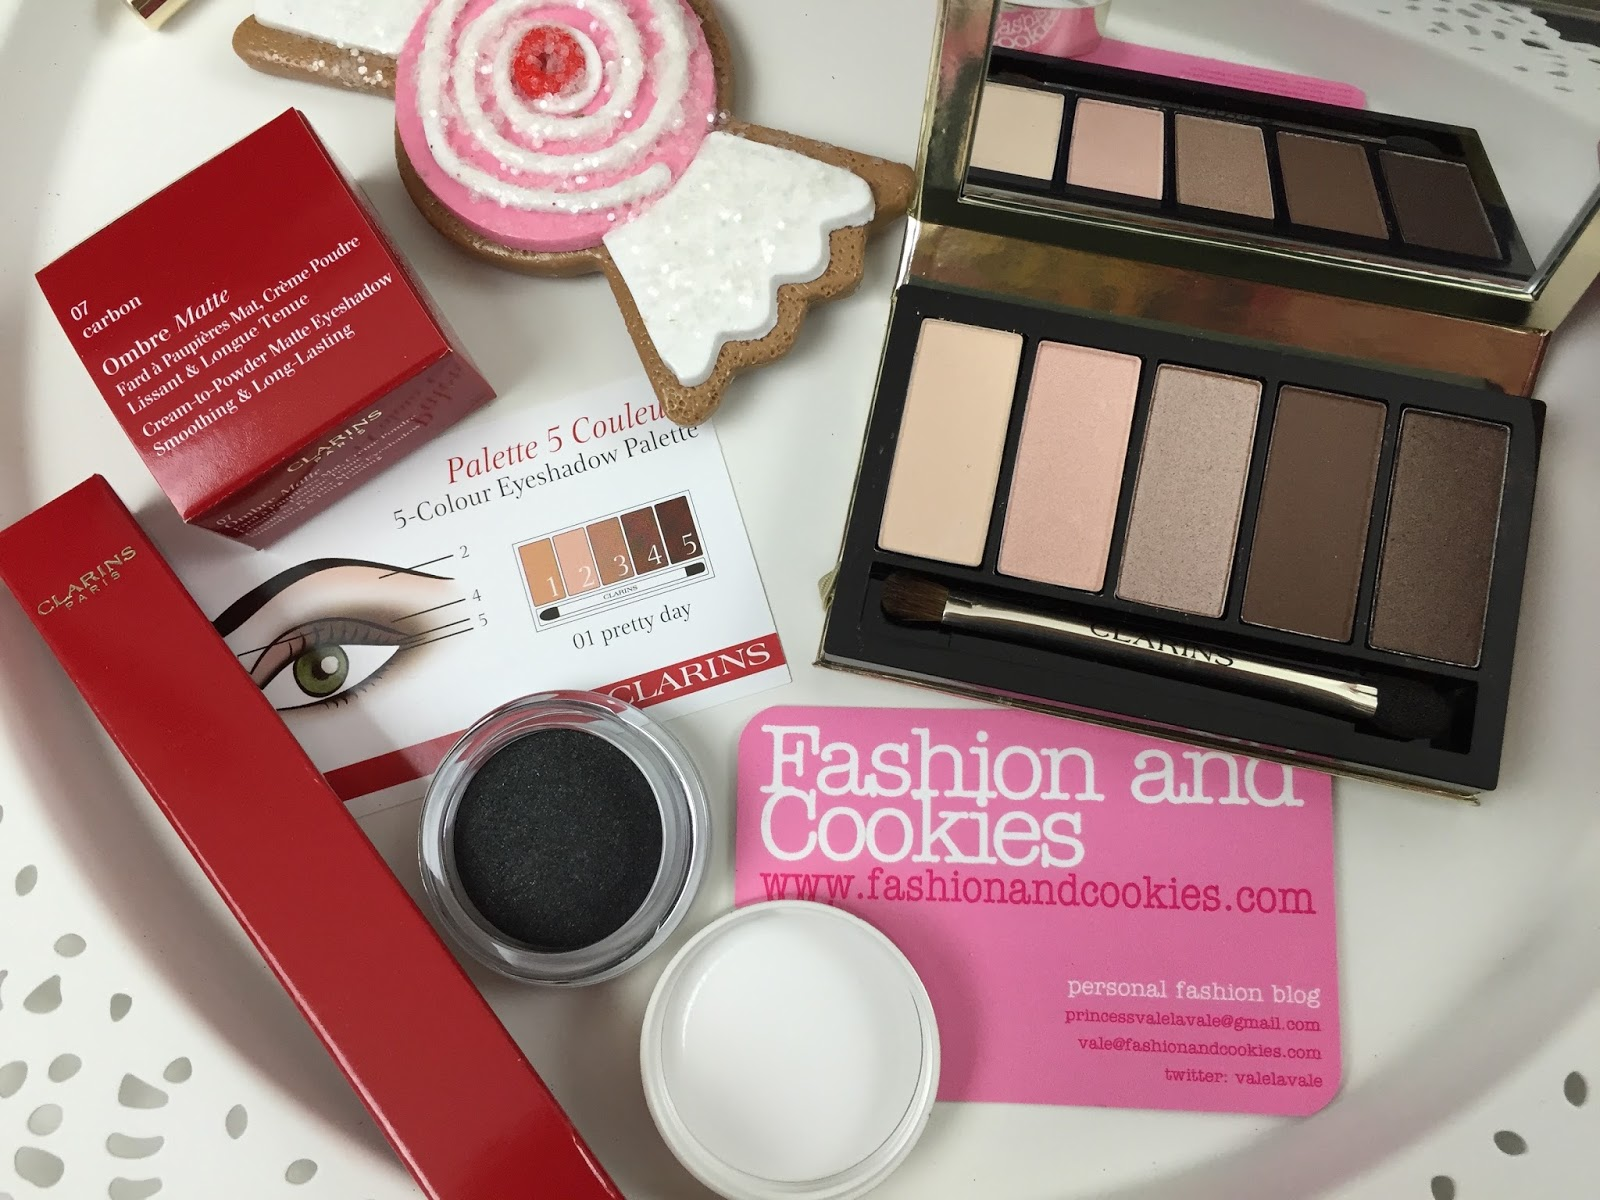 Clarins Pretty Day & Night collection in Limited Edition on Fashion and Cookies fashion blog, fashion blogger style